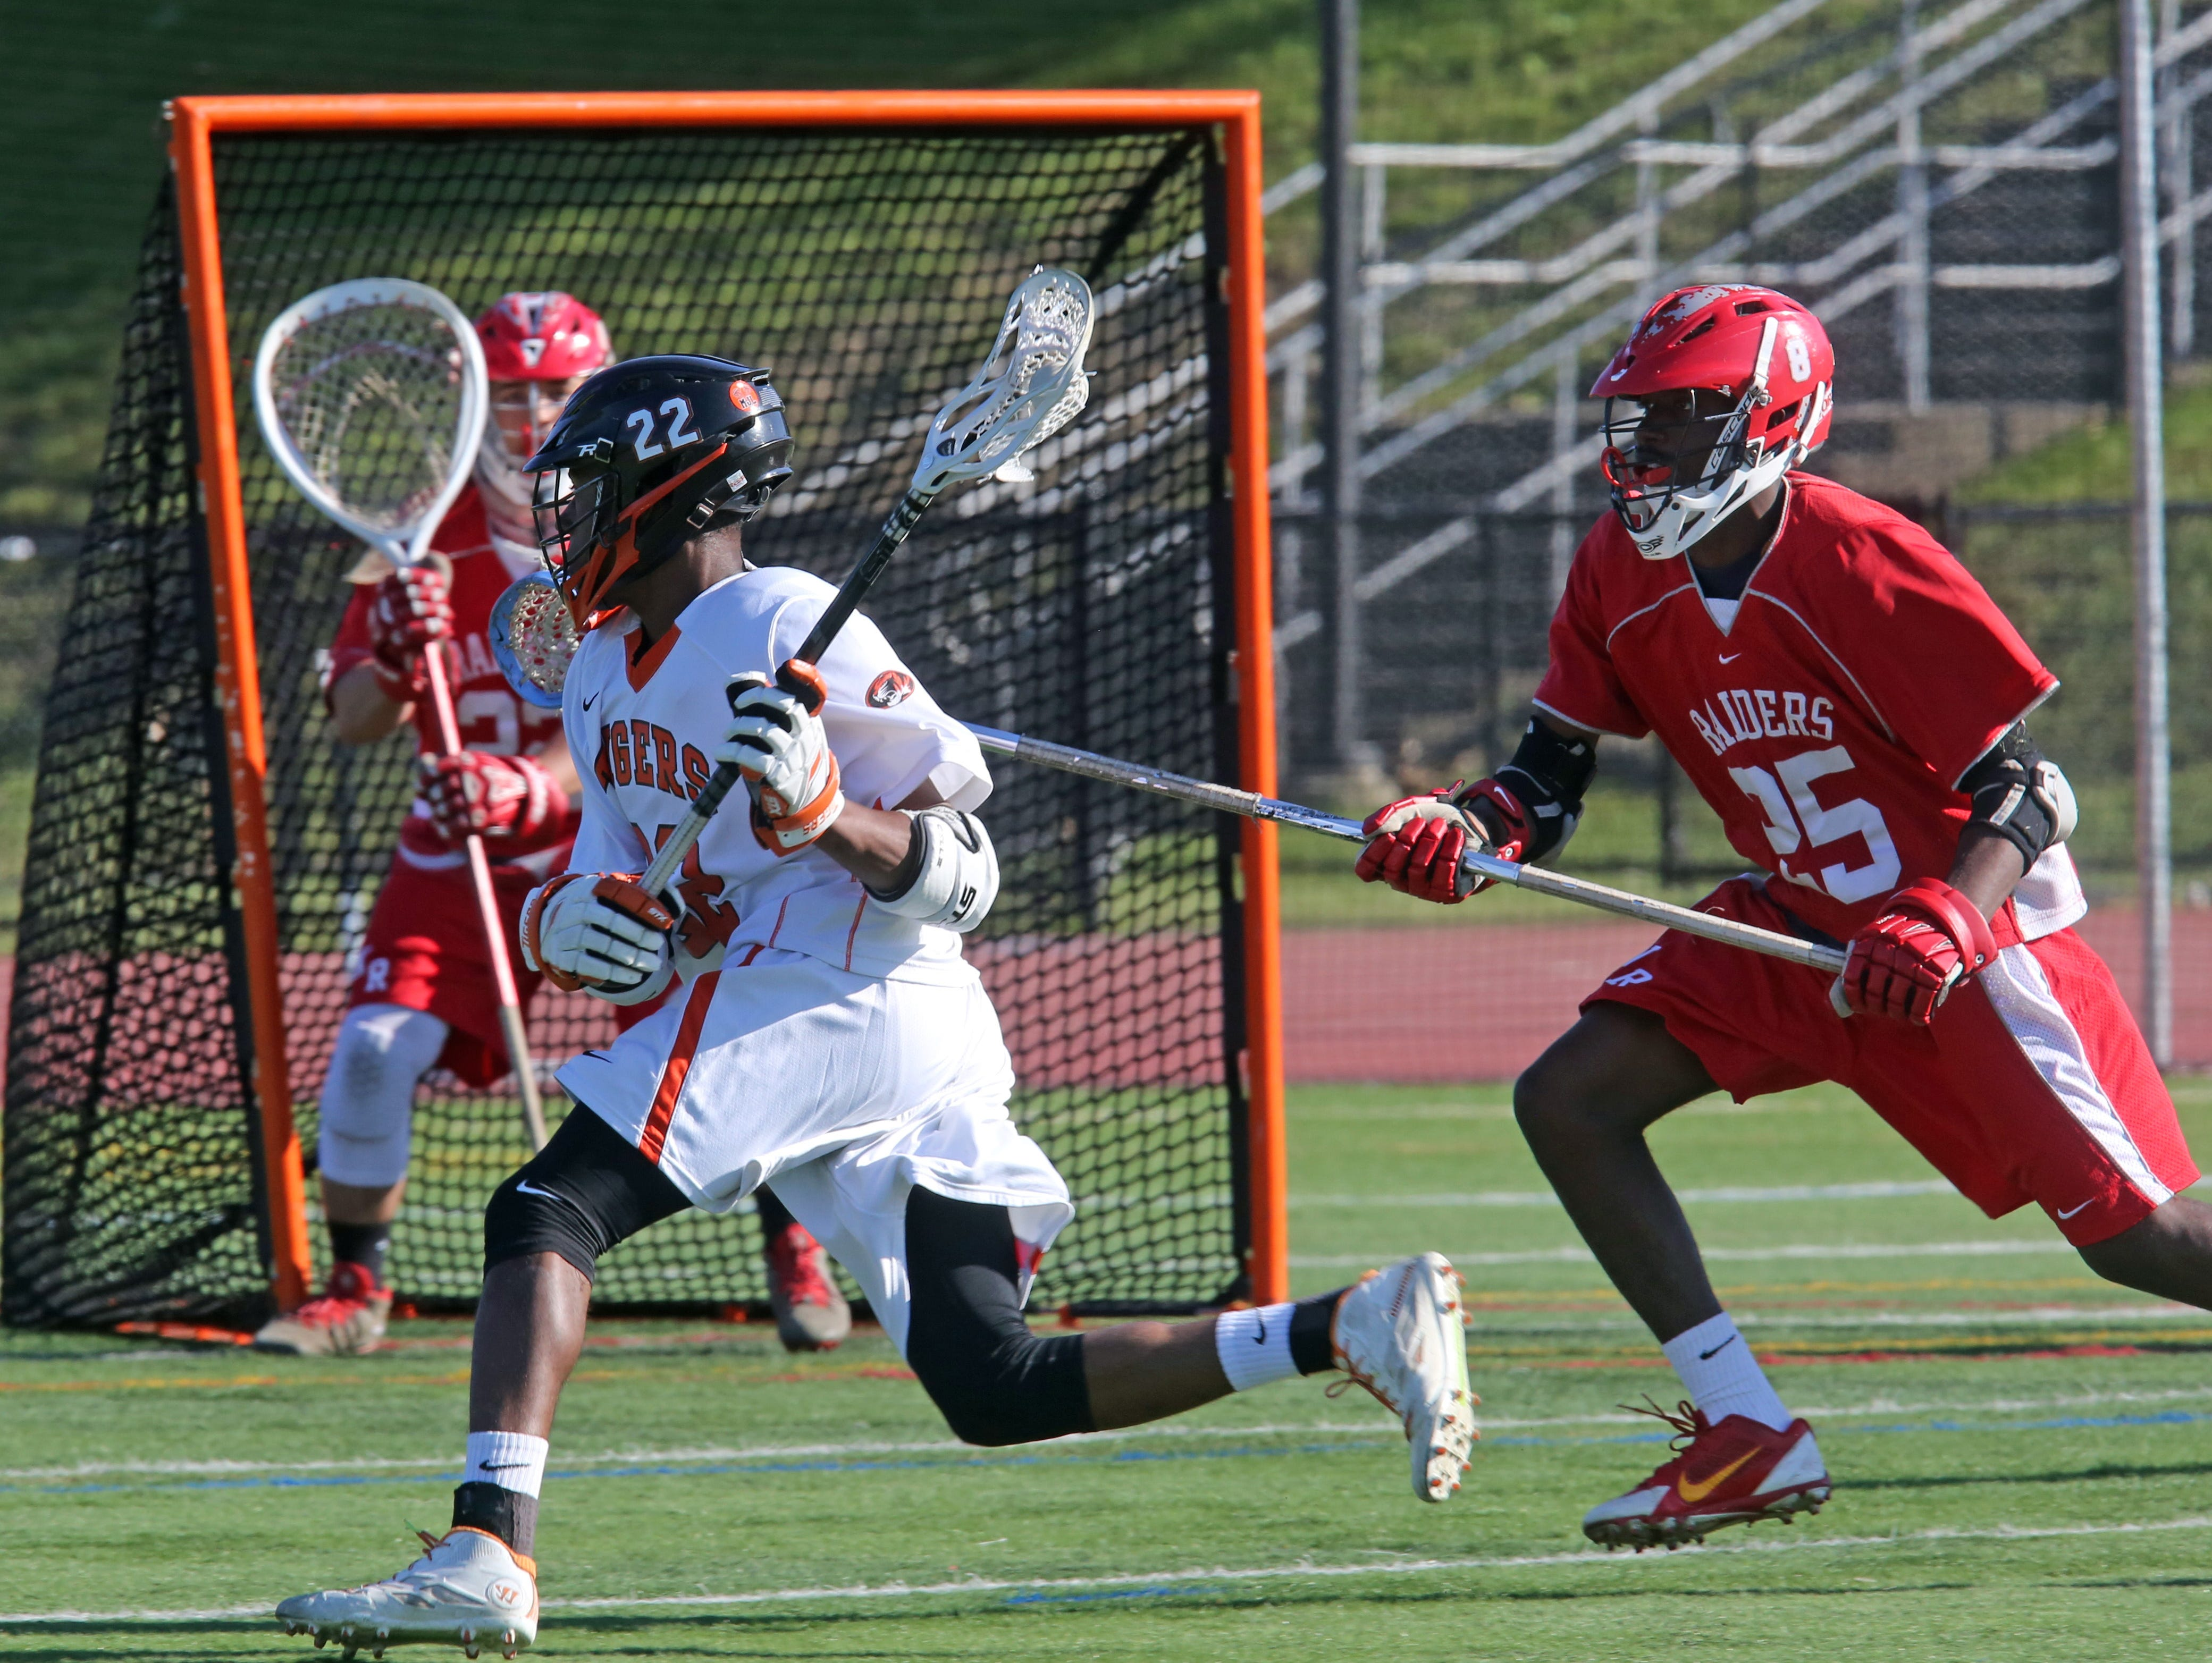 White Plains Miles Tilman (22) scores on North Rockland defense during boys lacrosse Section 1 Class A opening-round game at White Plains High School on May 16, 2016. White Plains defeats North Rockland 13-12.